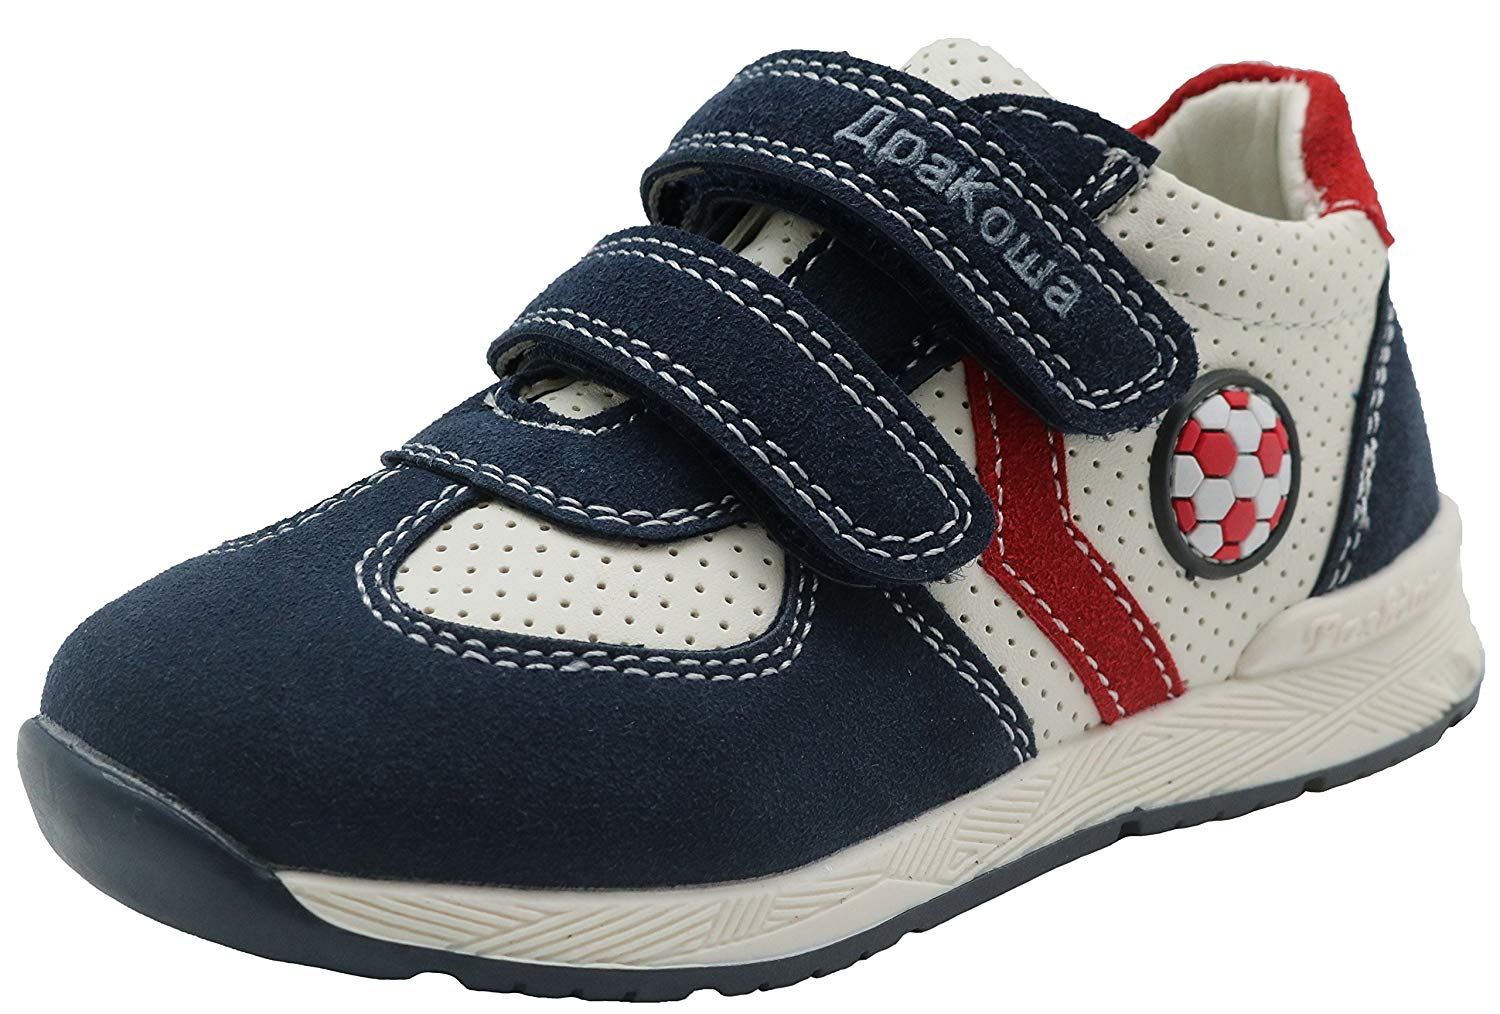 Vulladi Spain MEX Boys Fashion Sneakers Navy Blue//Toddler Boy to Little Boy